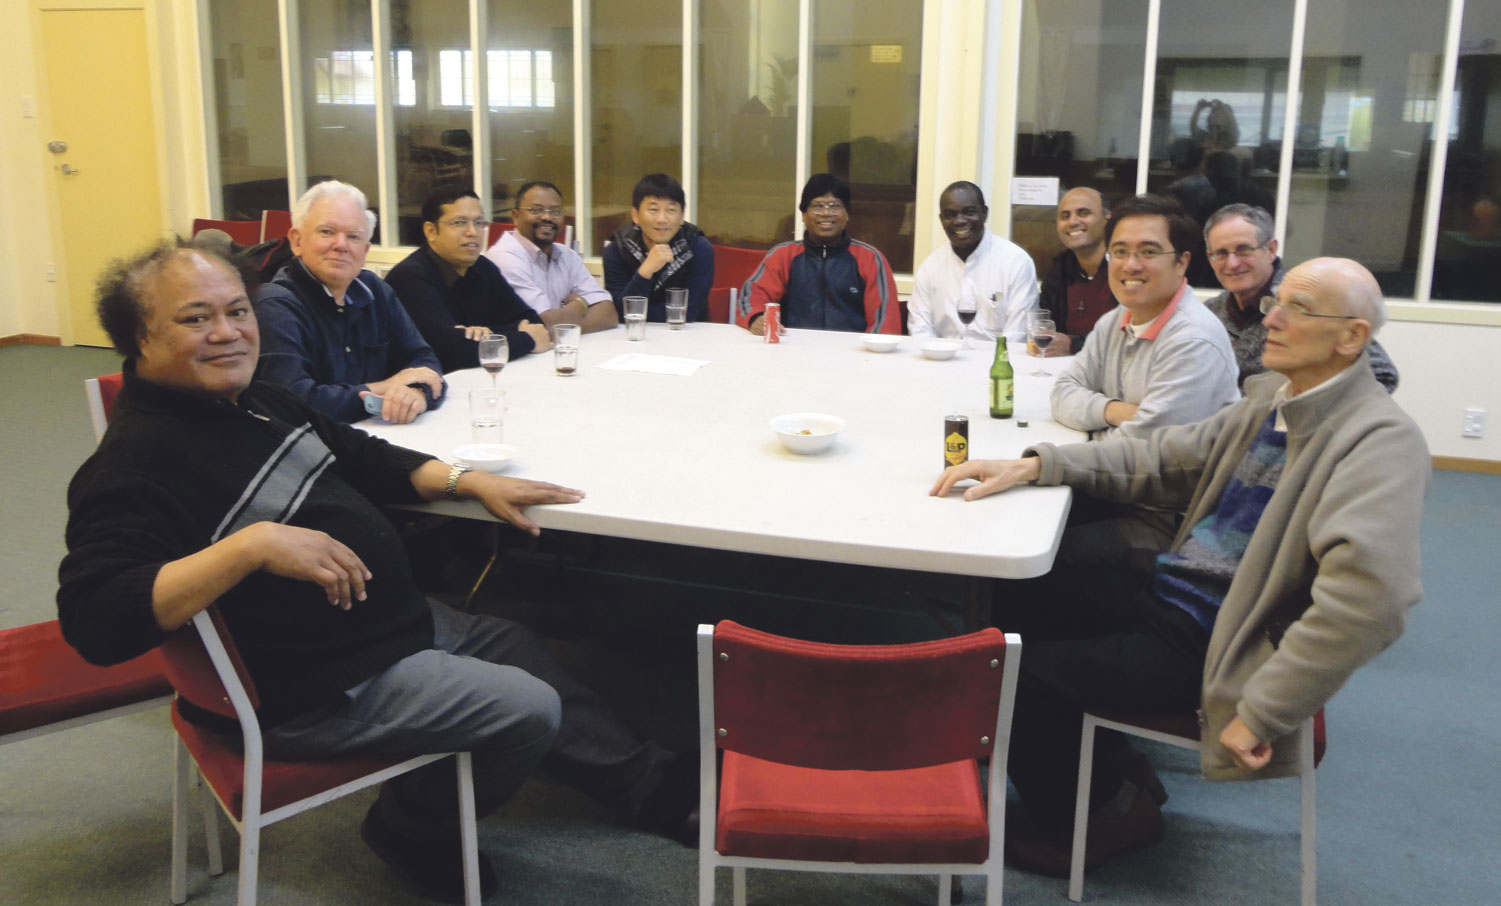 Overseas priests support each other Archdiocese of Wellington